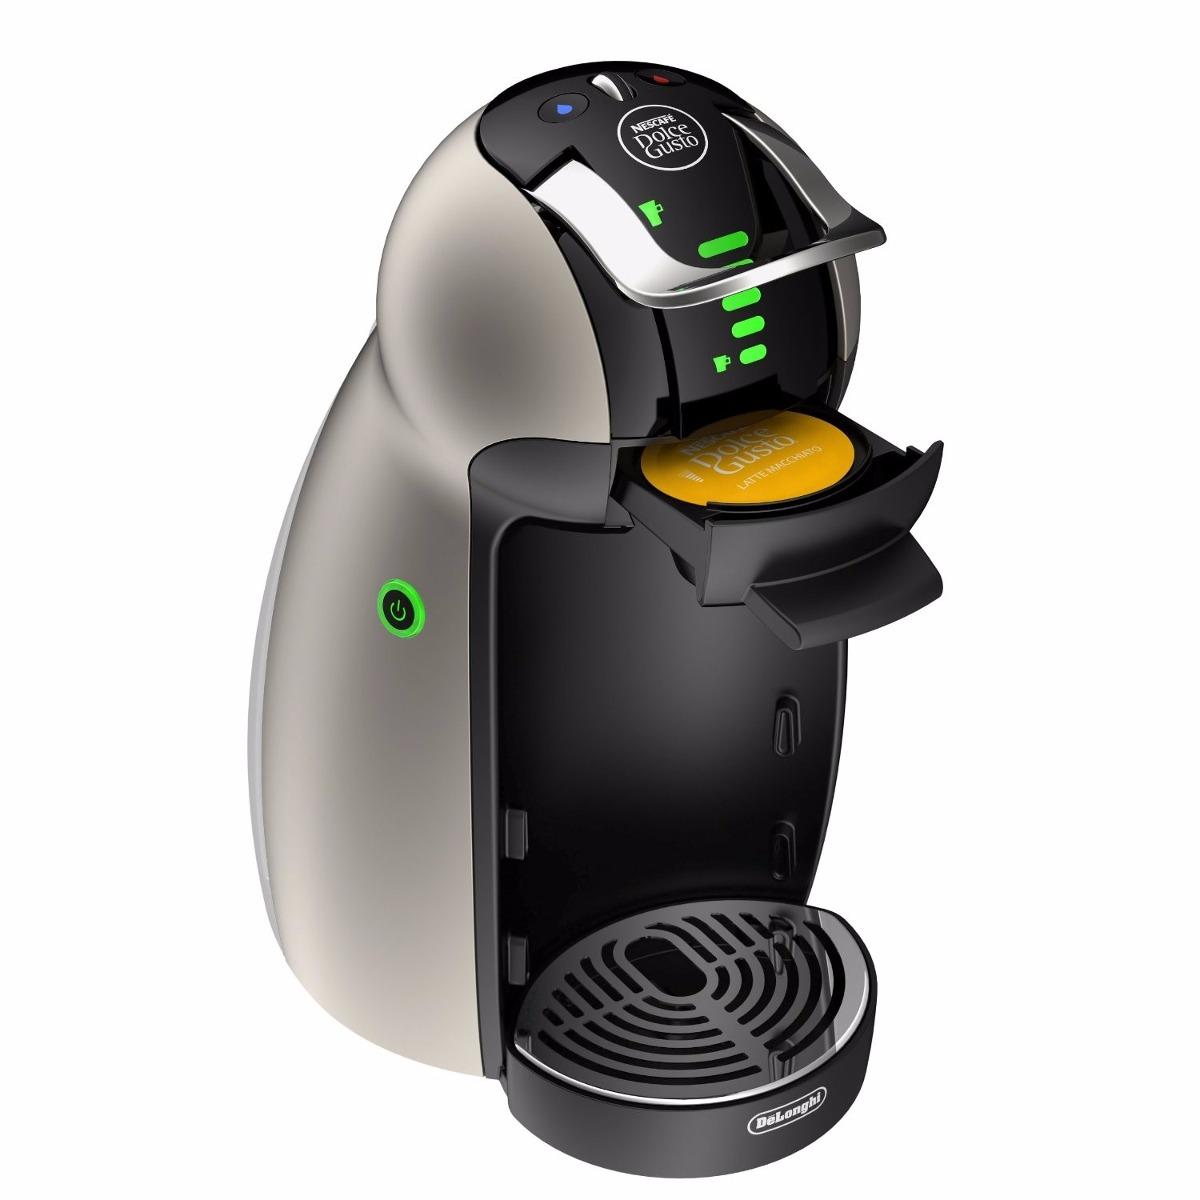 cafetera delonghi nescafe dolce gusto genio coffeemaker. Black Bedroom Furniture Sets. Home Design Ideas